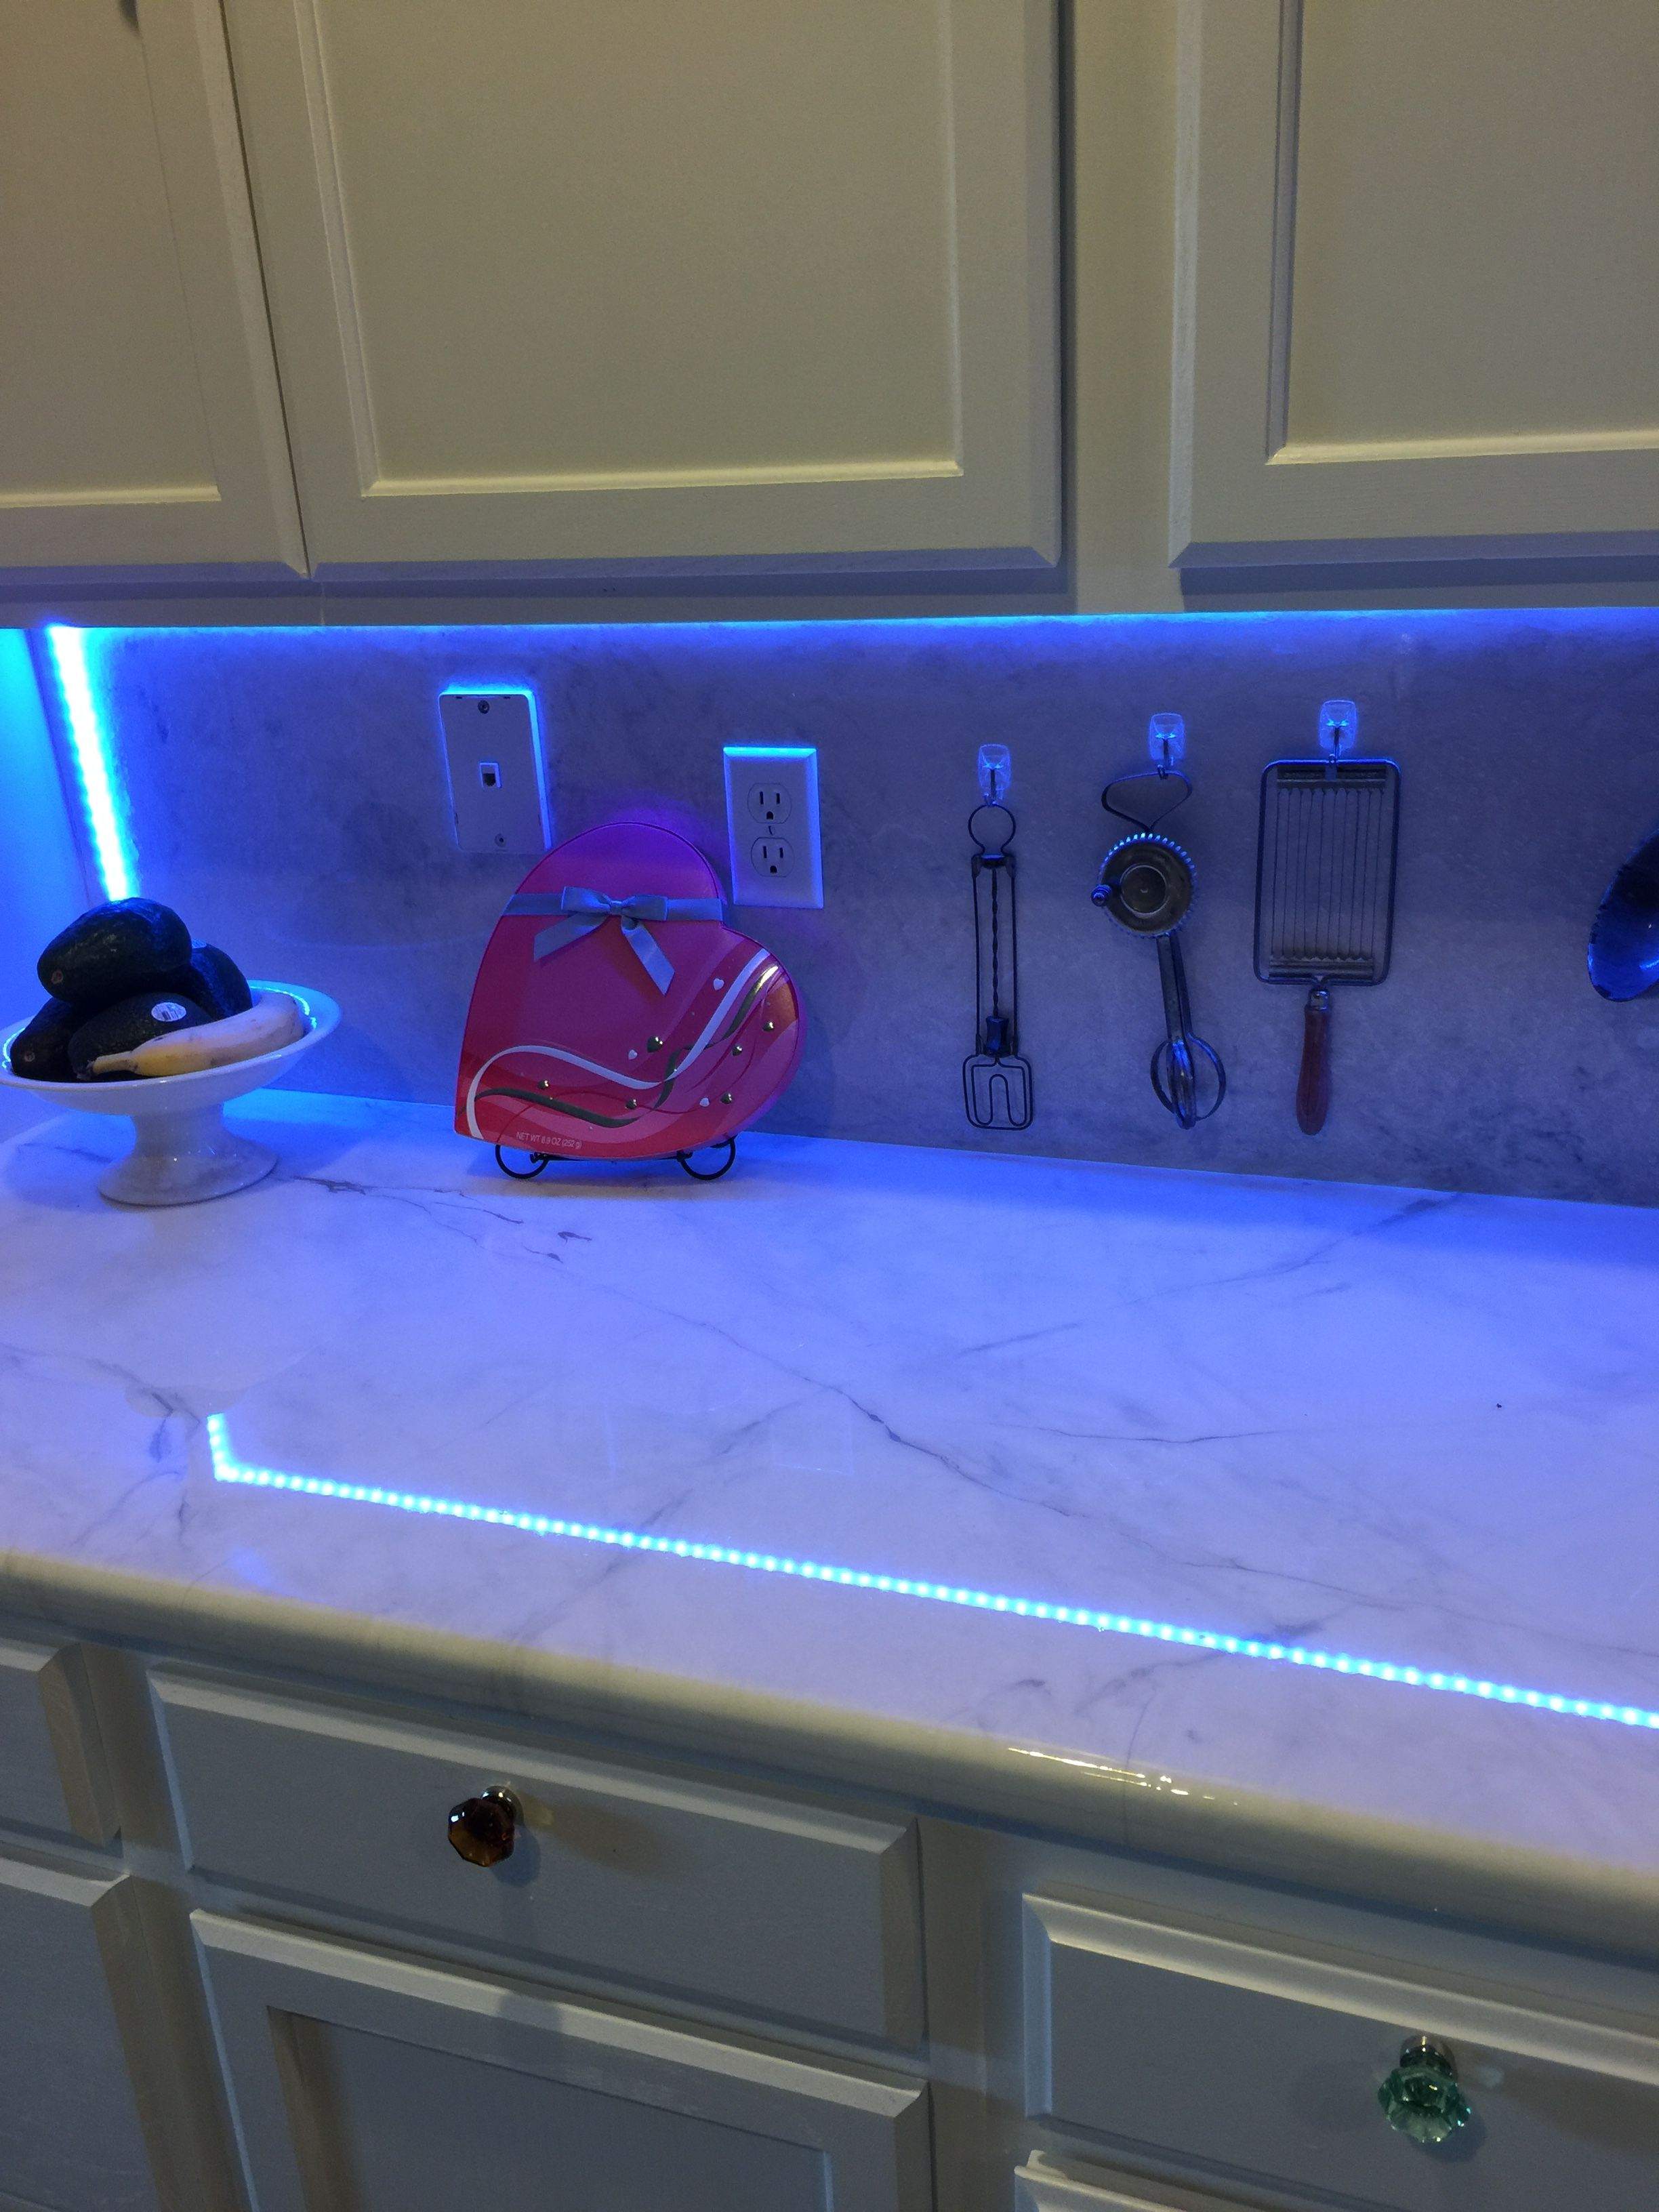 White Marble Epoxy Countertops With Pearl Highlights And Gold And